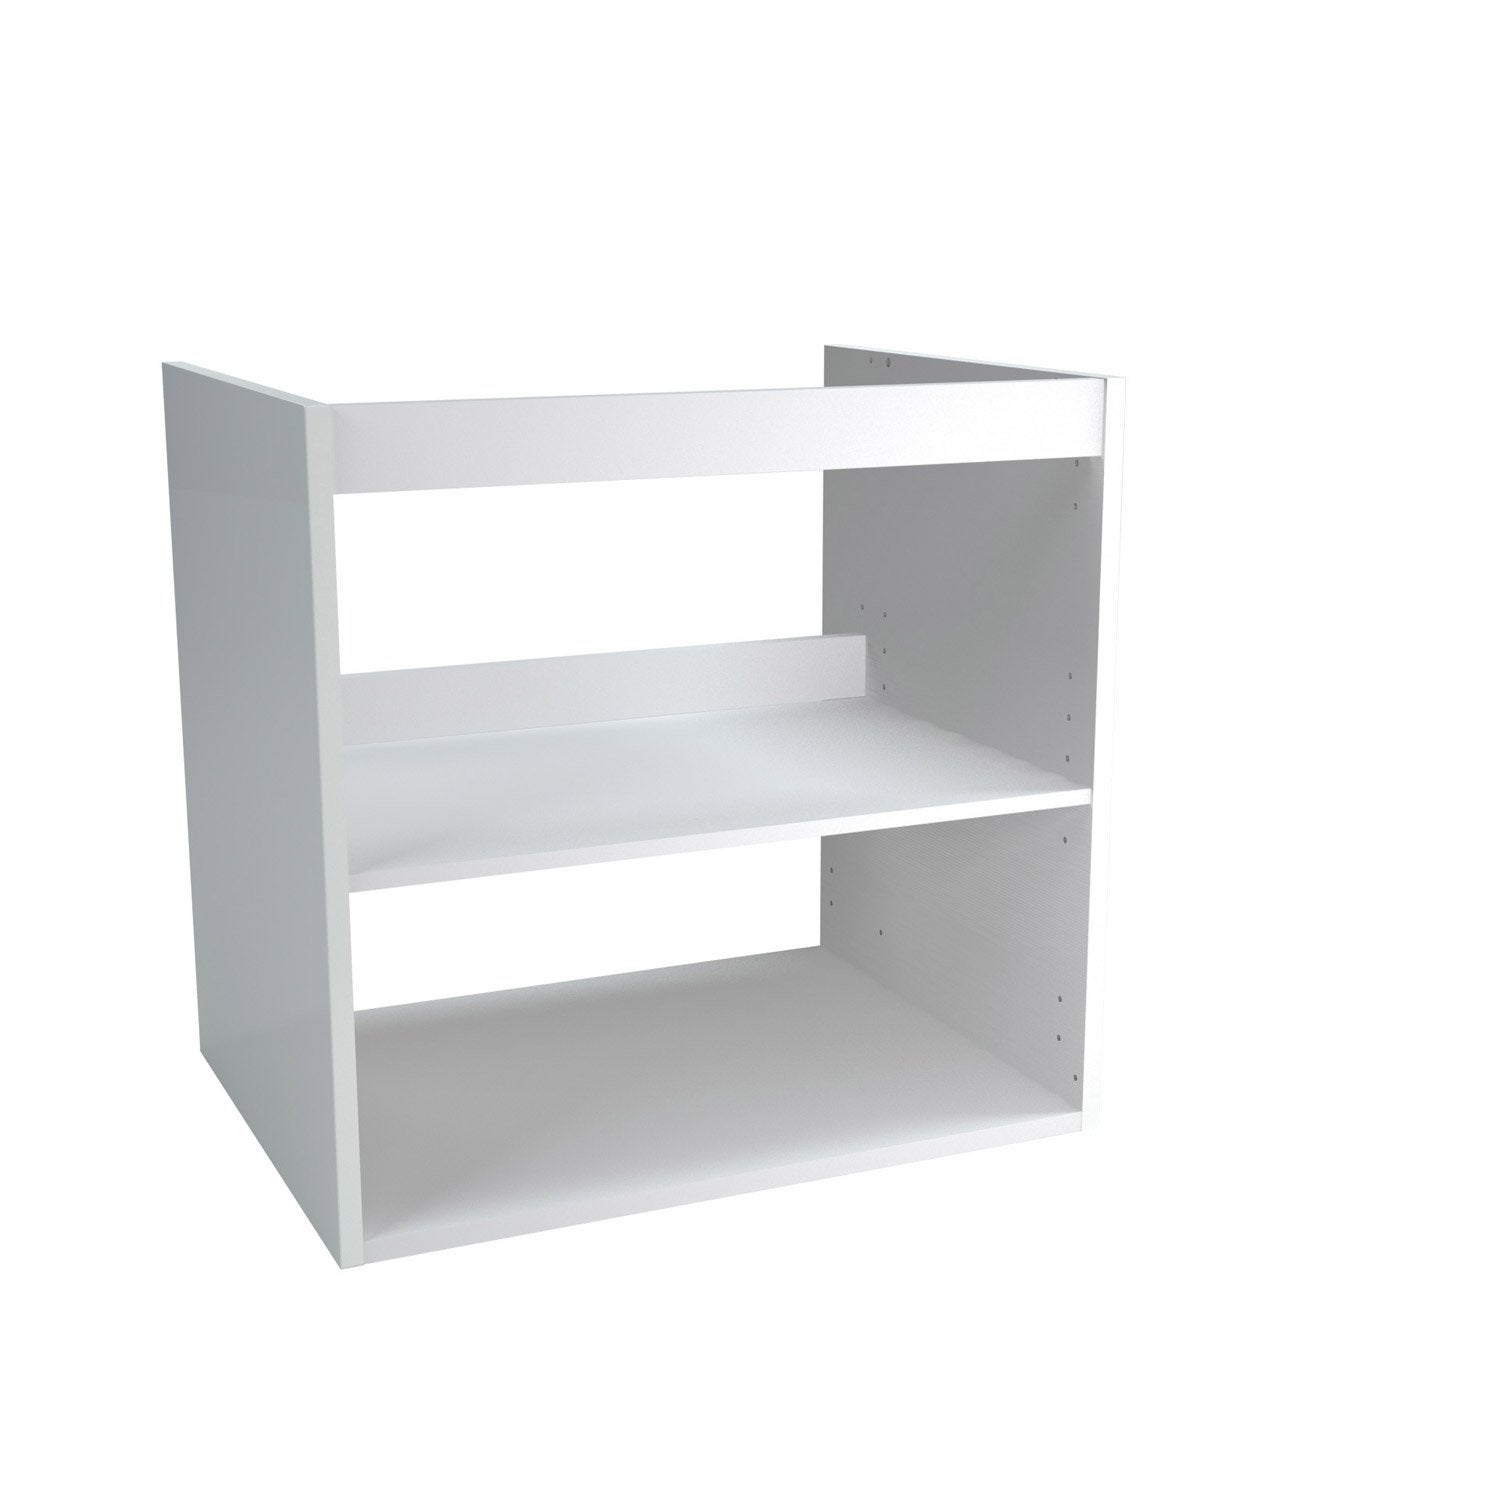 Caisson meuble sous vasque x x cm blanc for Mobile remix leroy merlin